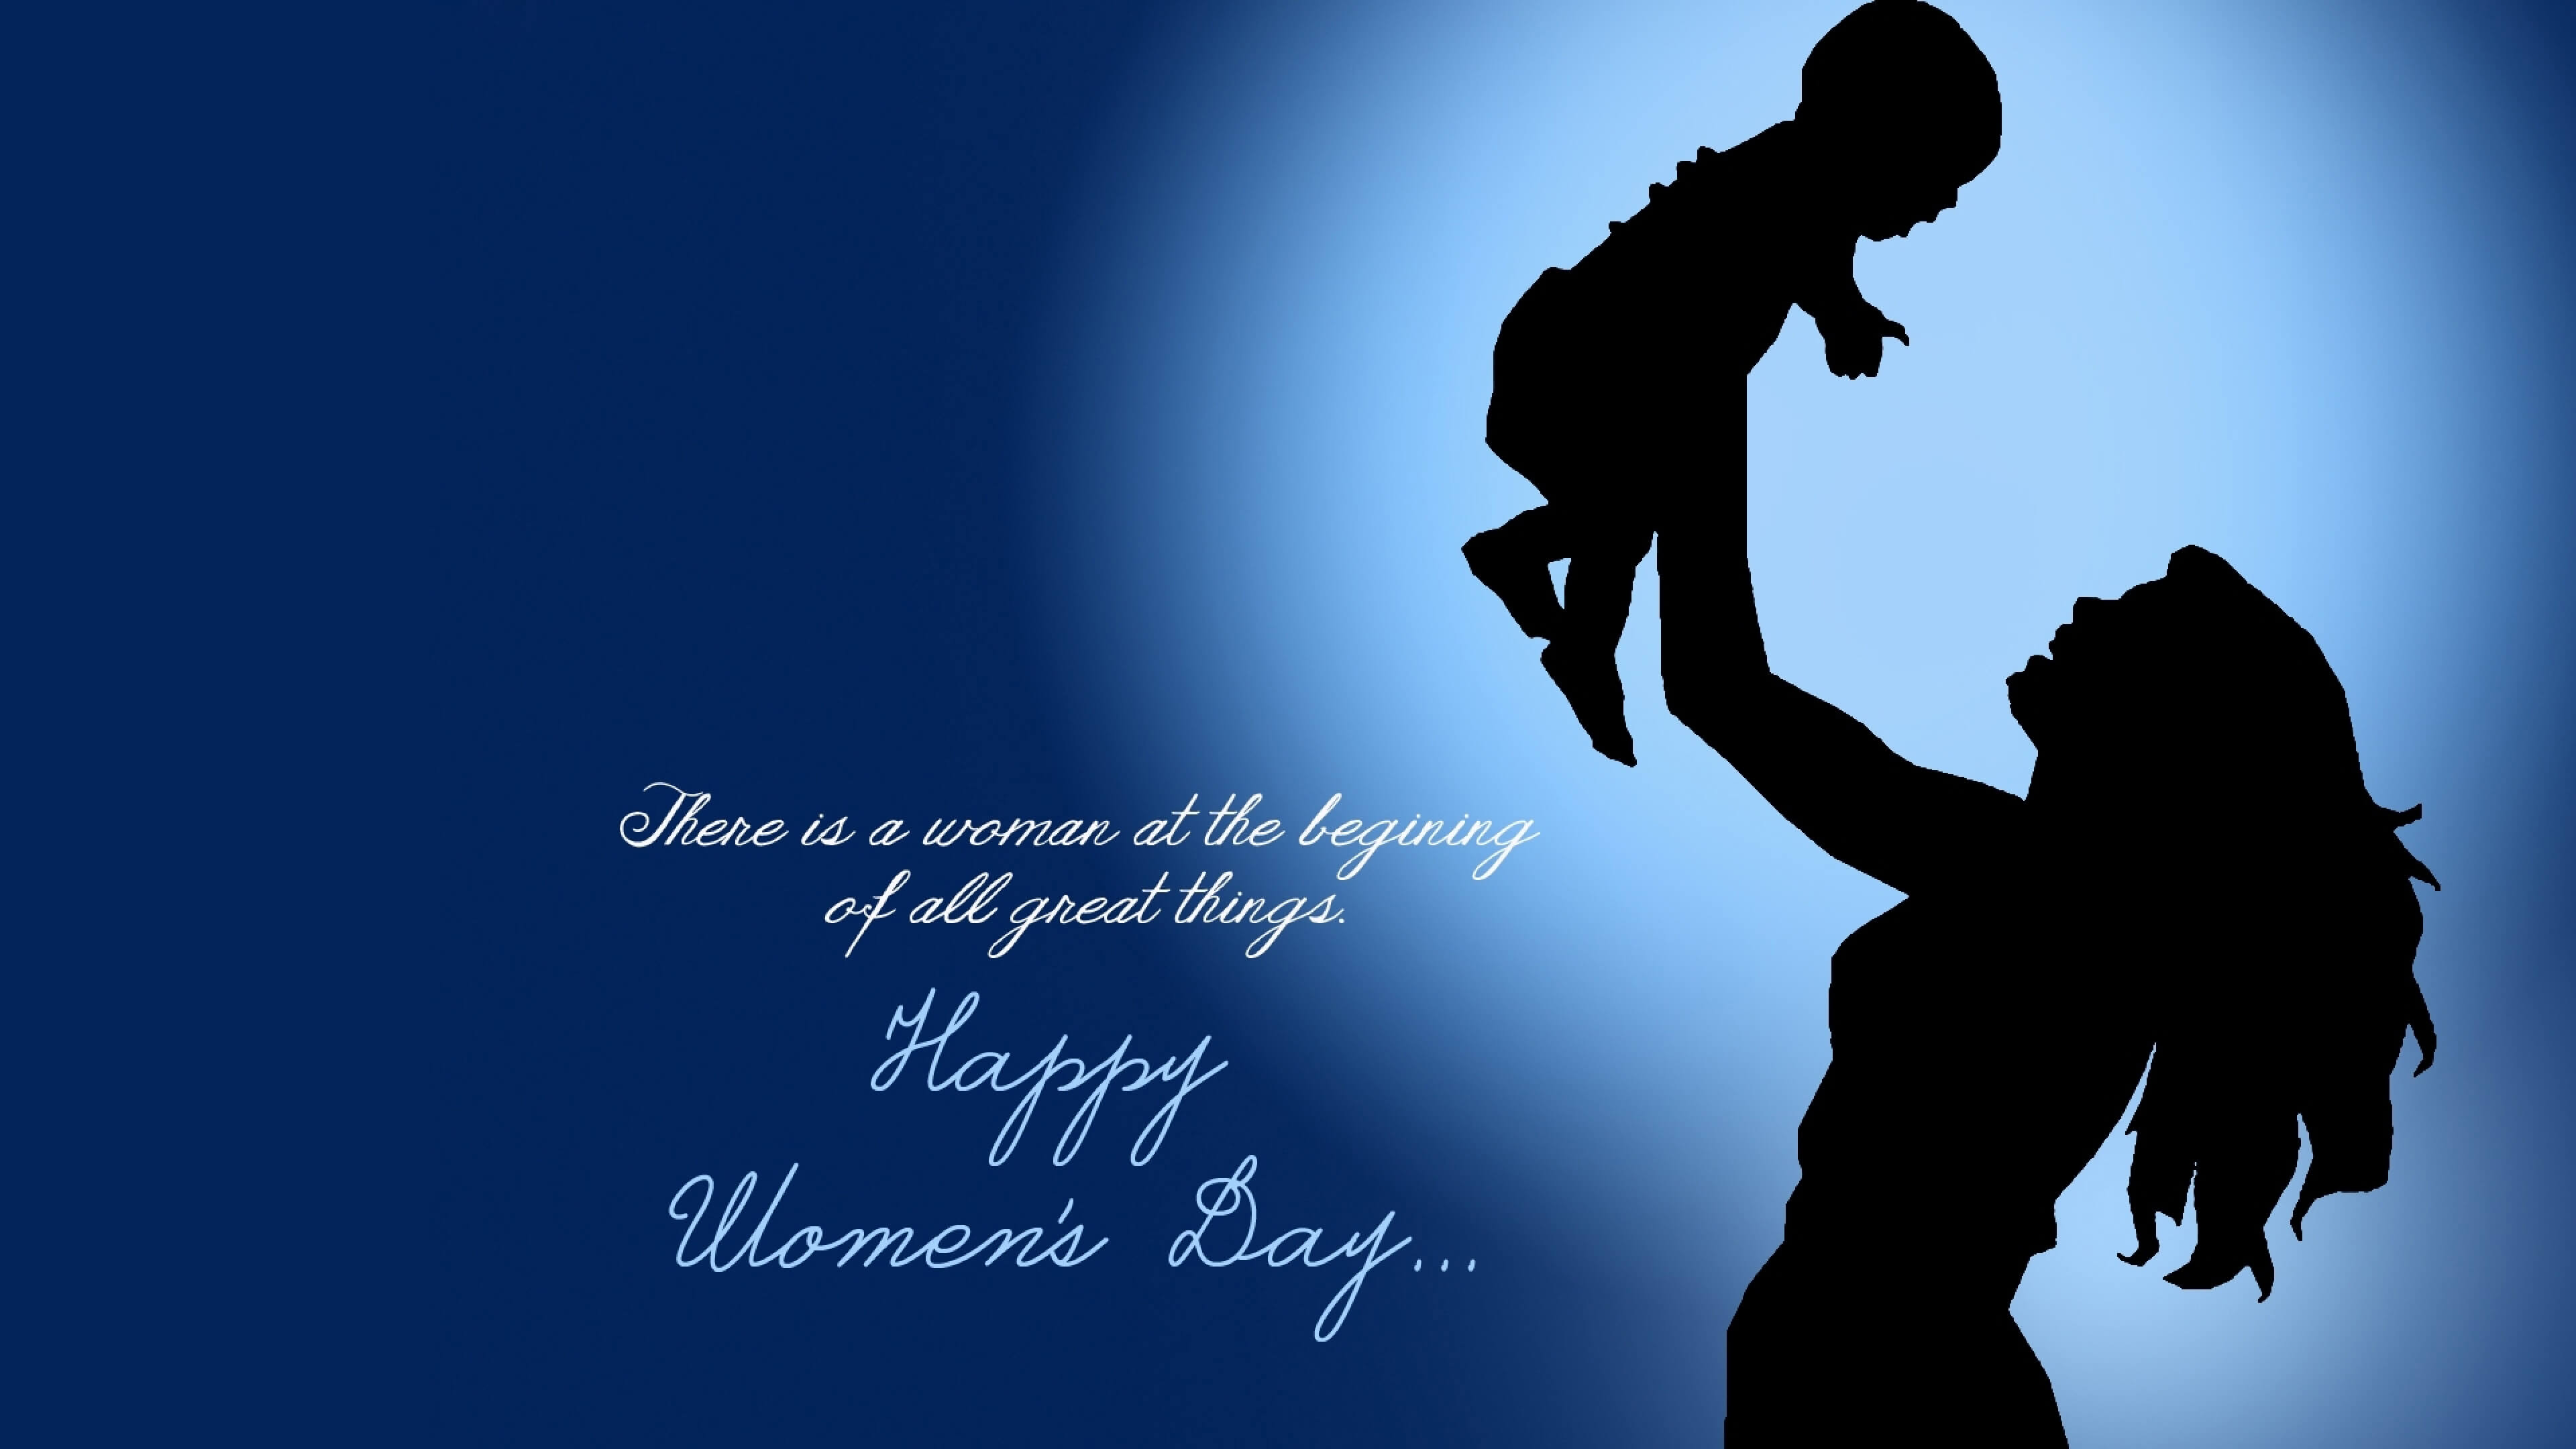 happy womens day quotes silhouette hd wallpaper